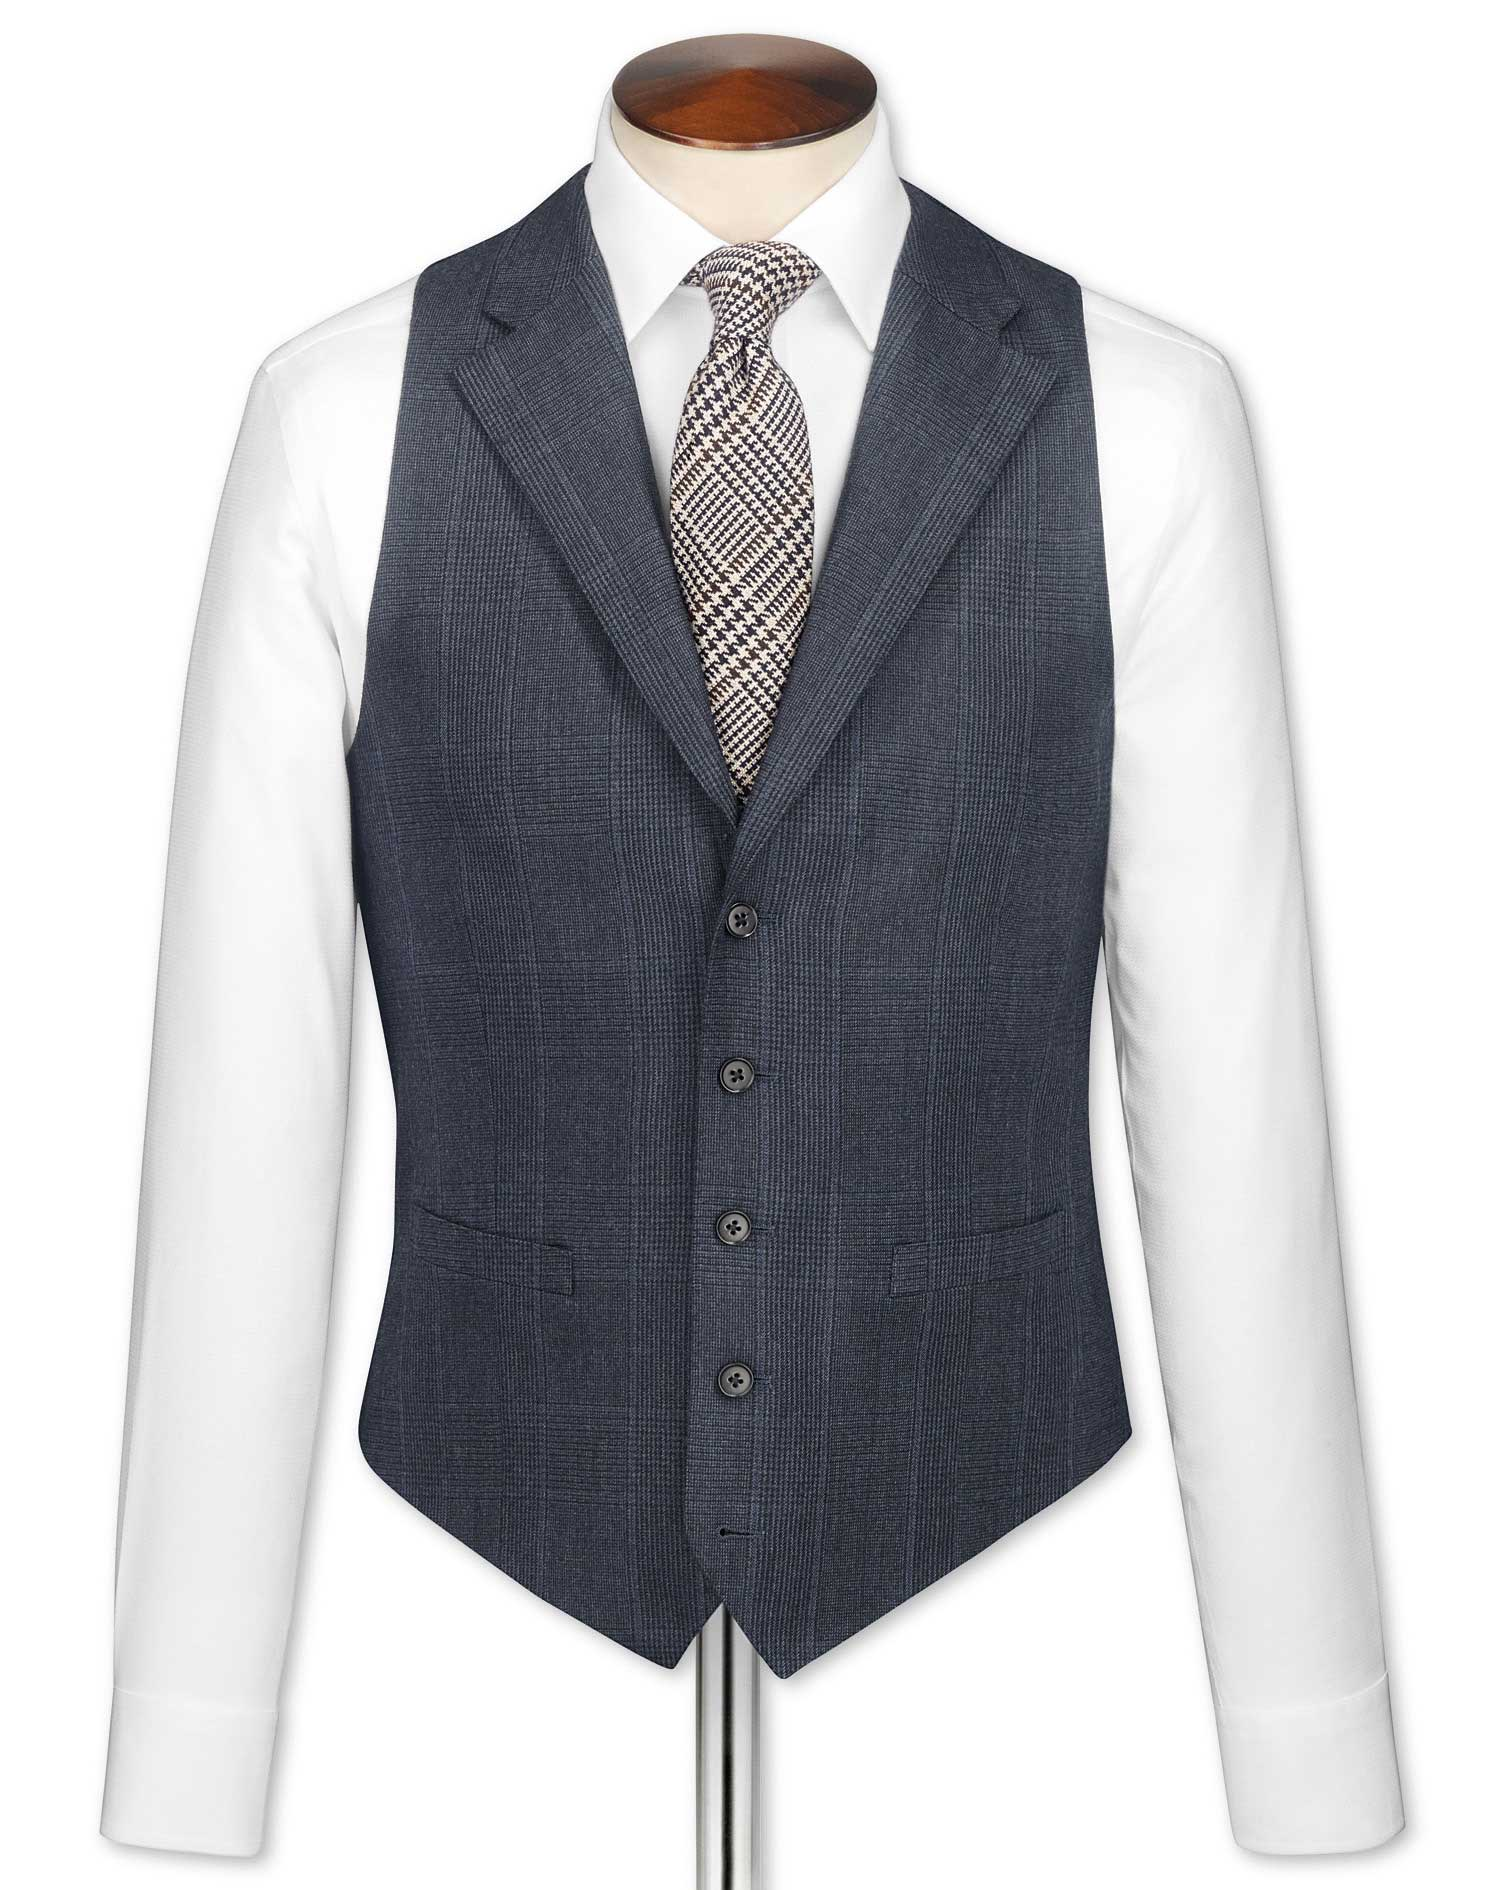 Navy Check Saxony Business Suit Wool Waistcoat Size w38 by Charles Tyrwhitt